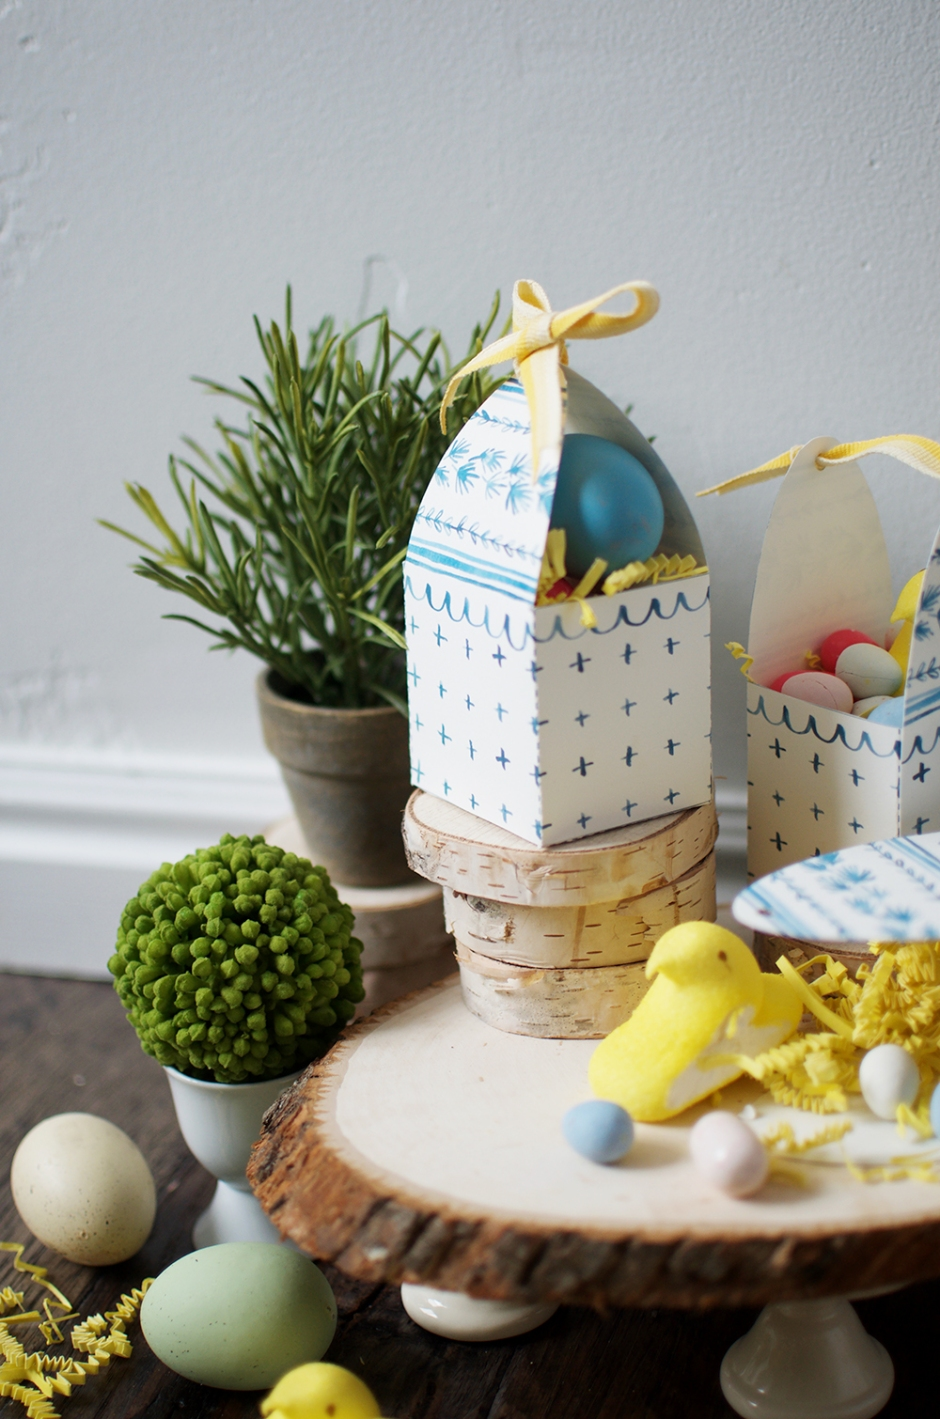 #Hallelujah Three Easter Projects from Melissa Esplin (Free Downloads!)